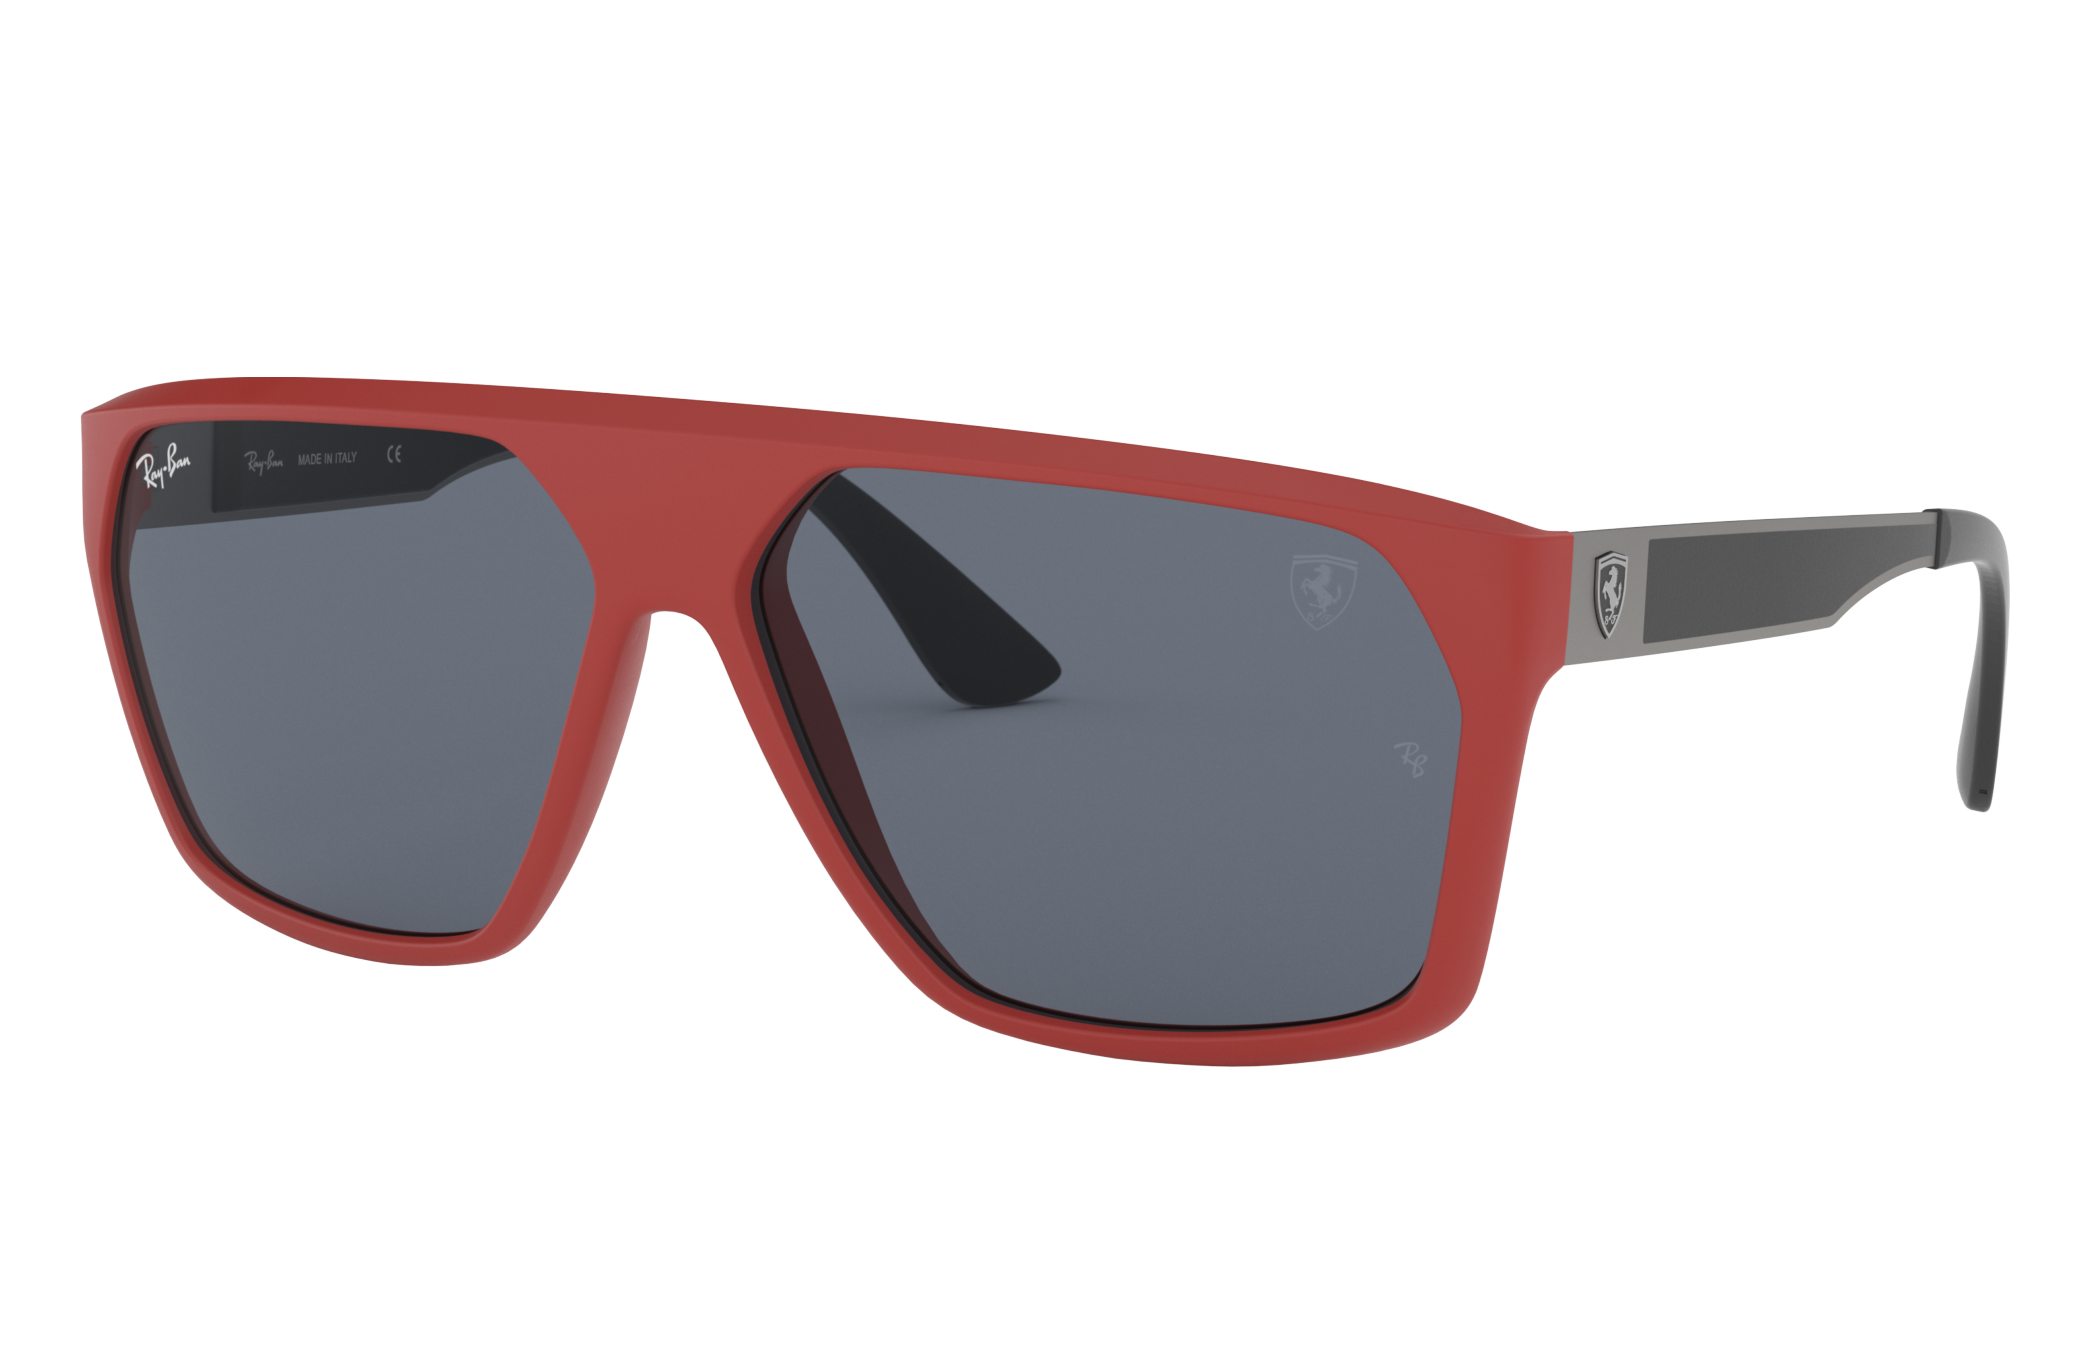 Ray-Ban Rb4309m Scuderia Ferrari Collection Red, Gray Lenses - RB4309M